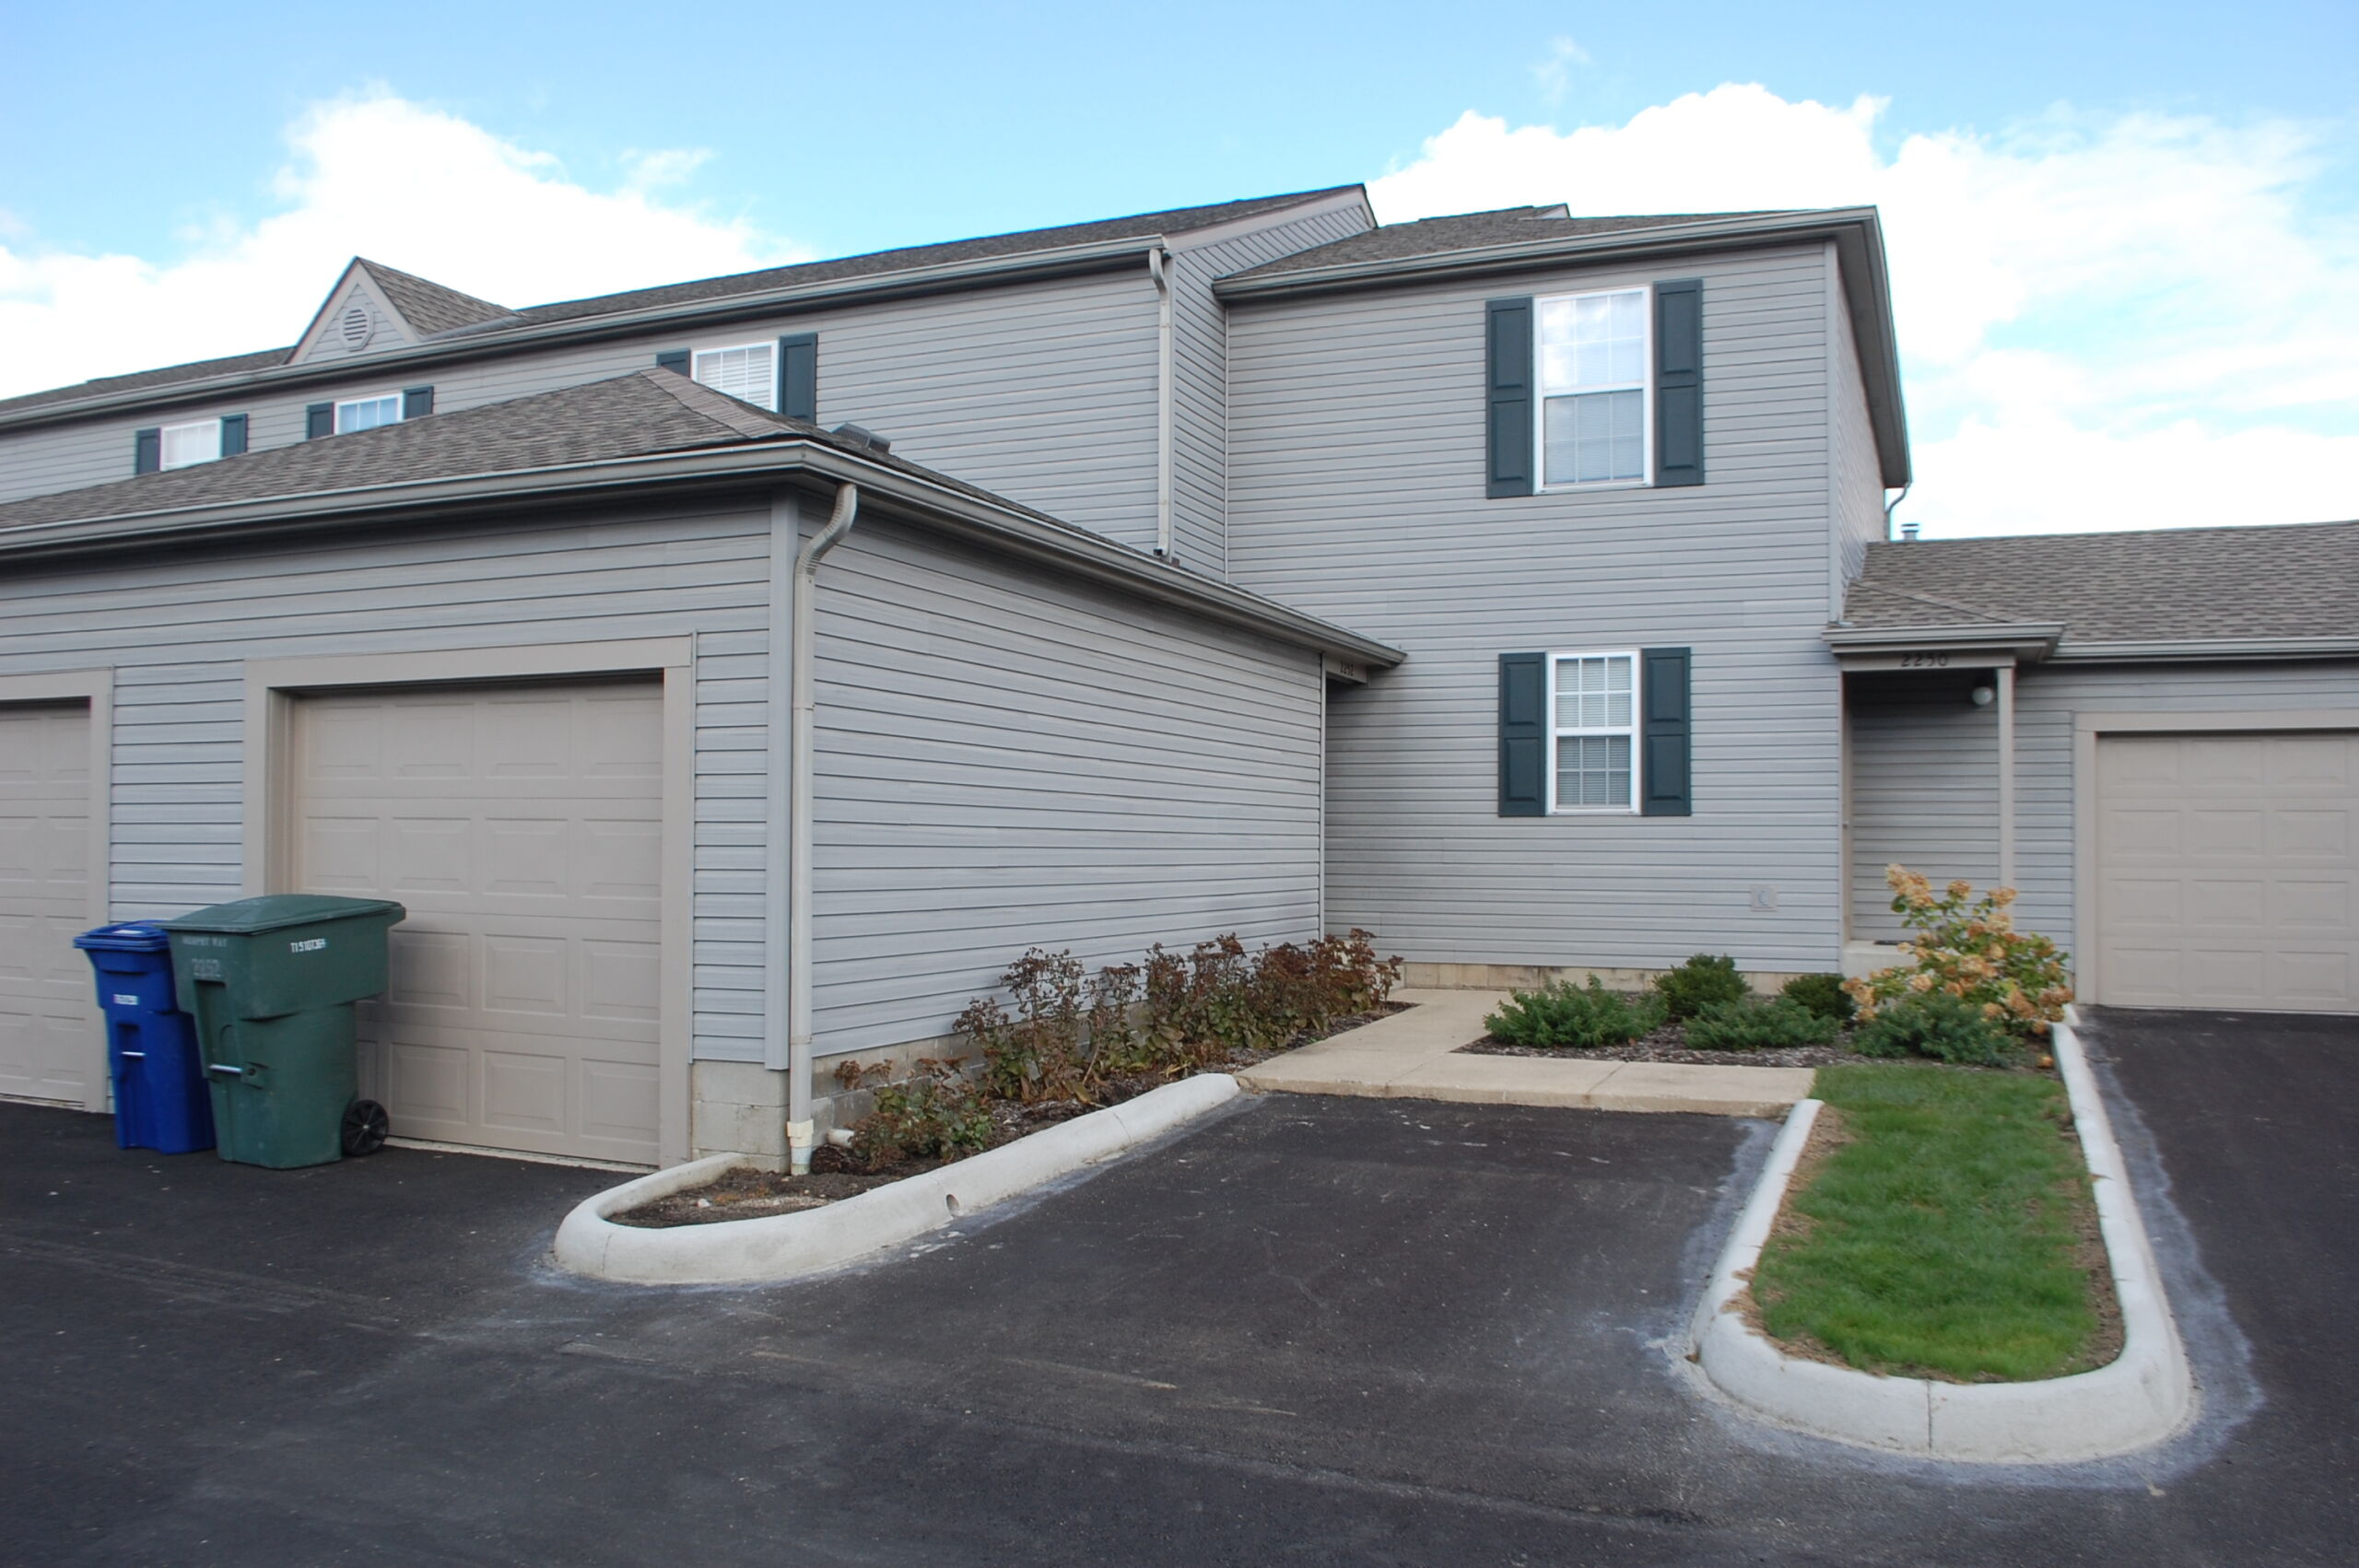 2 bedroom, 2.5 bath condo with community pool and gym